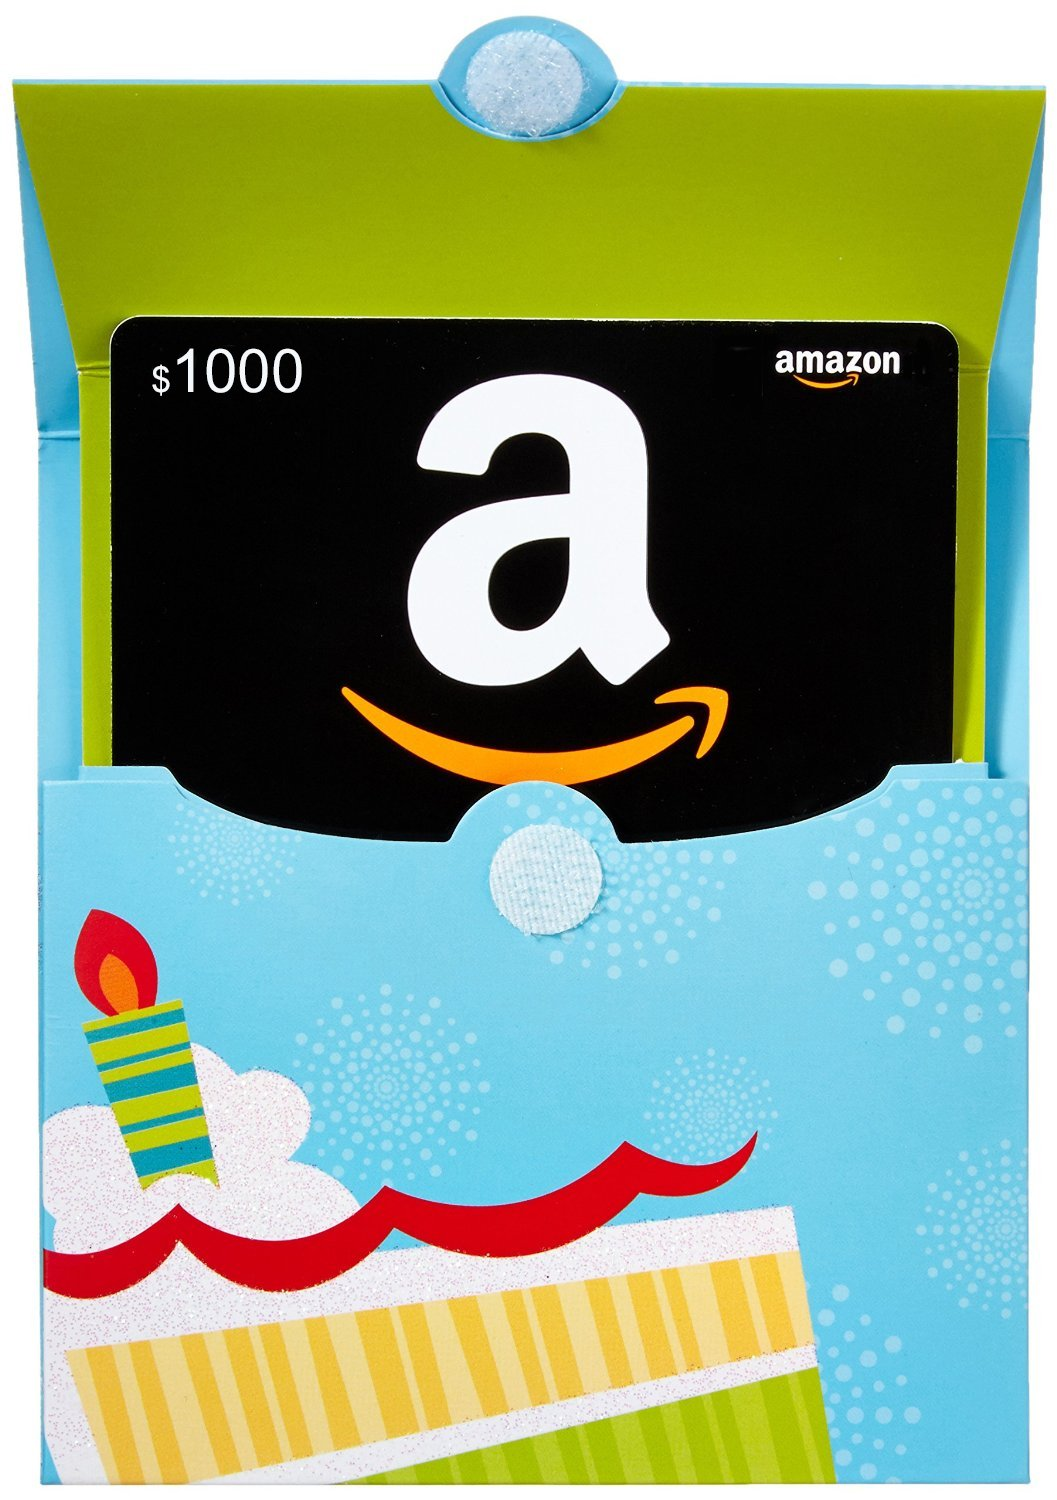 Amazon.ca Card in a Birthday Pop-Up (Classic Black Card Design) Inc.